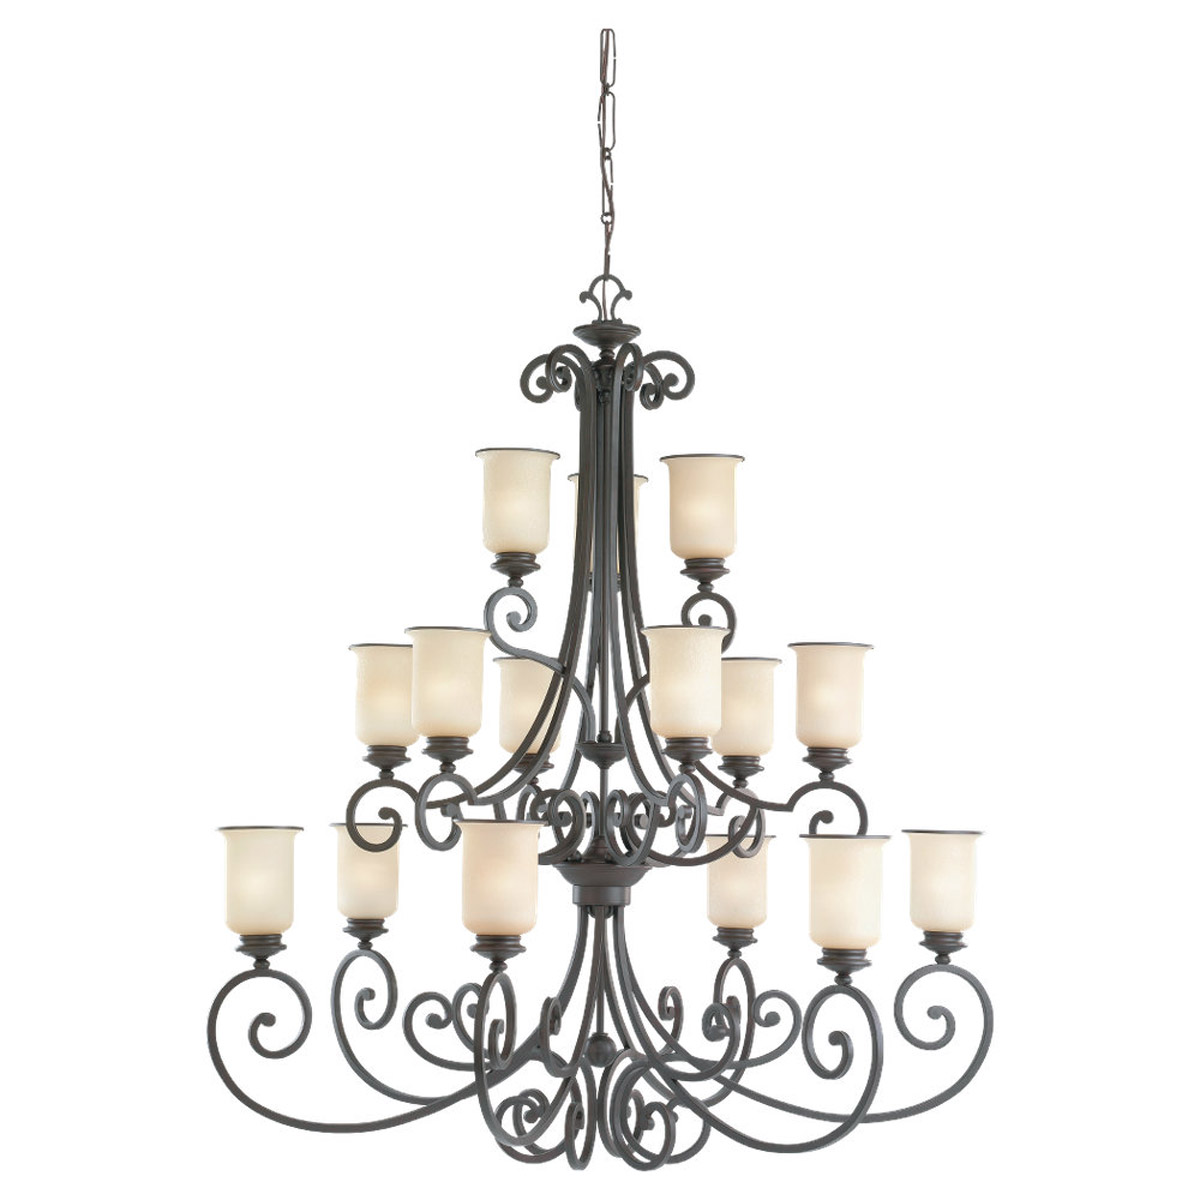 Sea Gull 31347-814 Acadia 15 Light 49 inch Misted Bronze Chandelier Ceiling Light in Standard photo